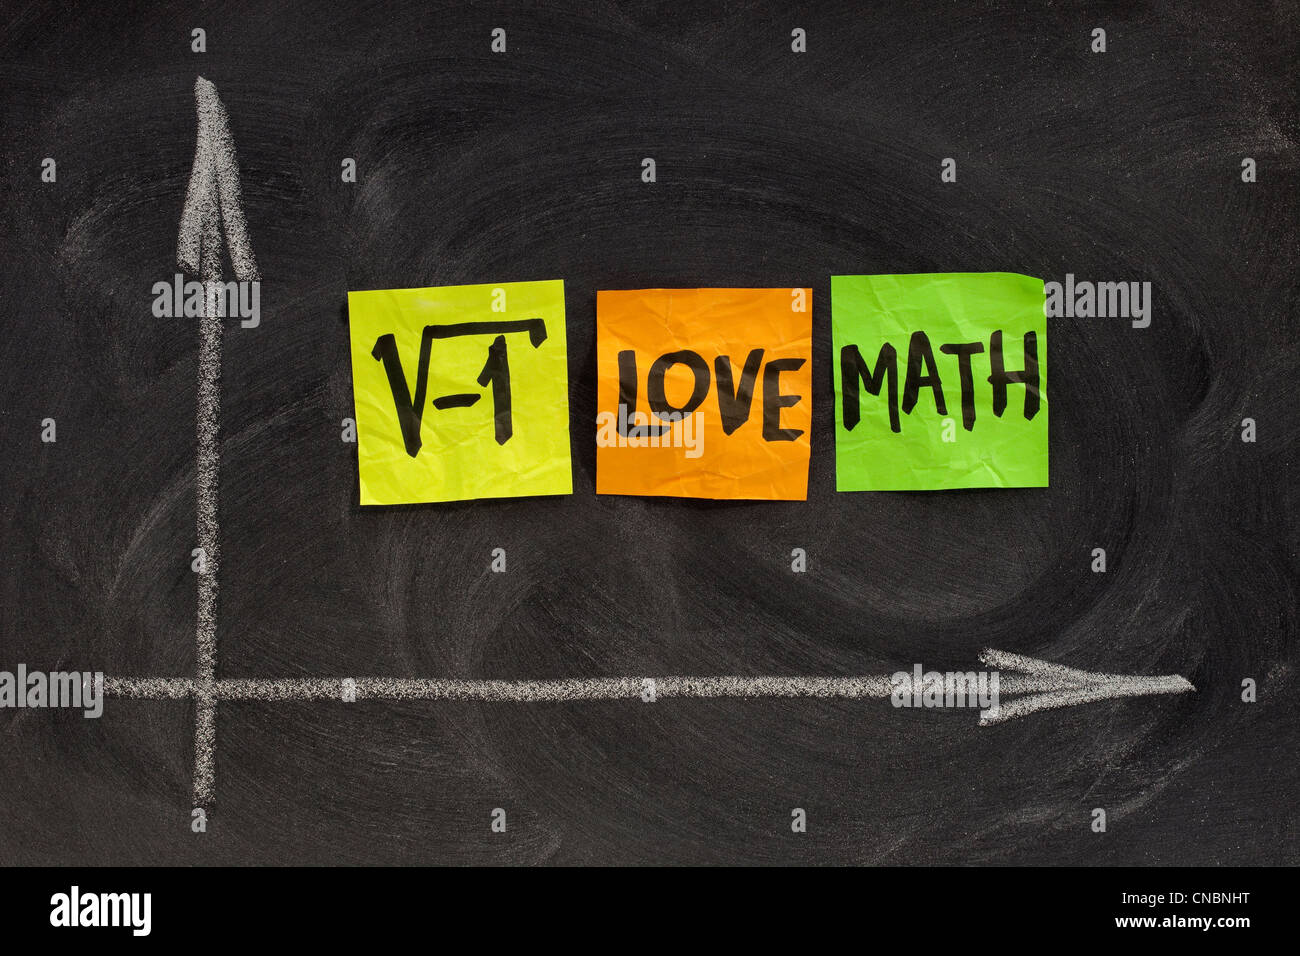 square root of negative number - i love math concept, colorful